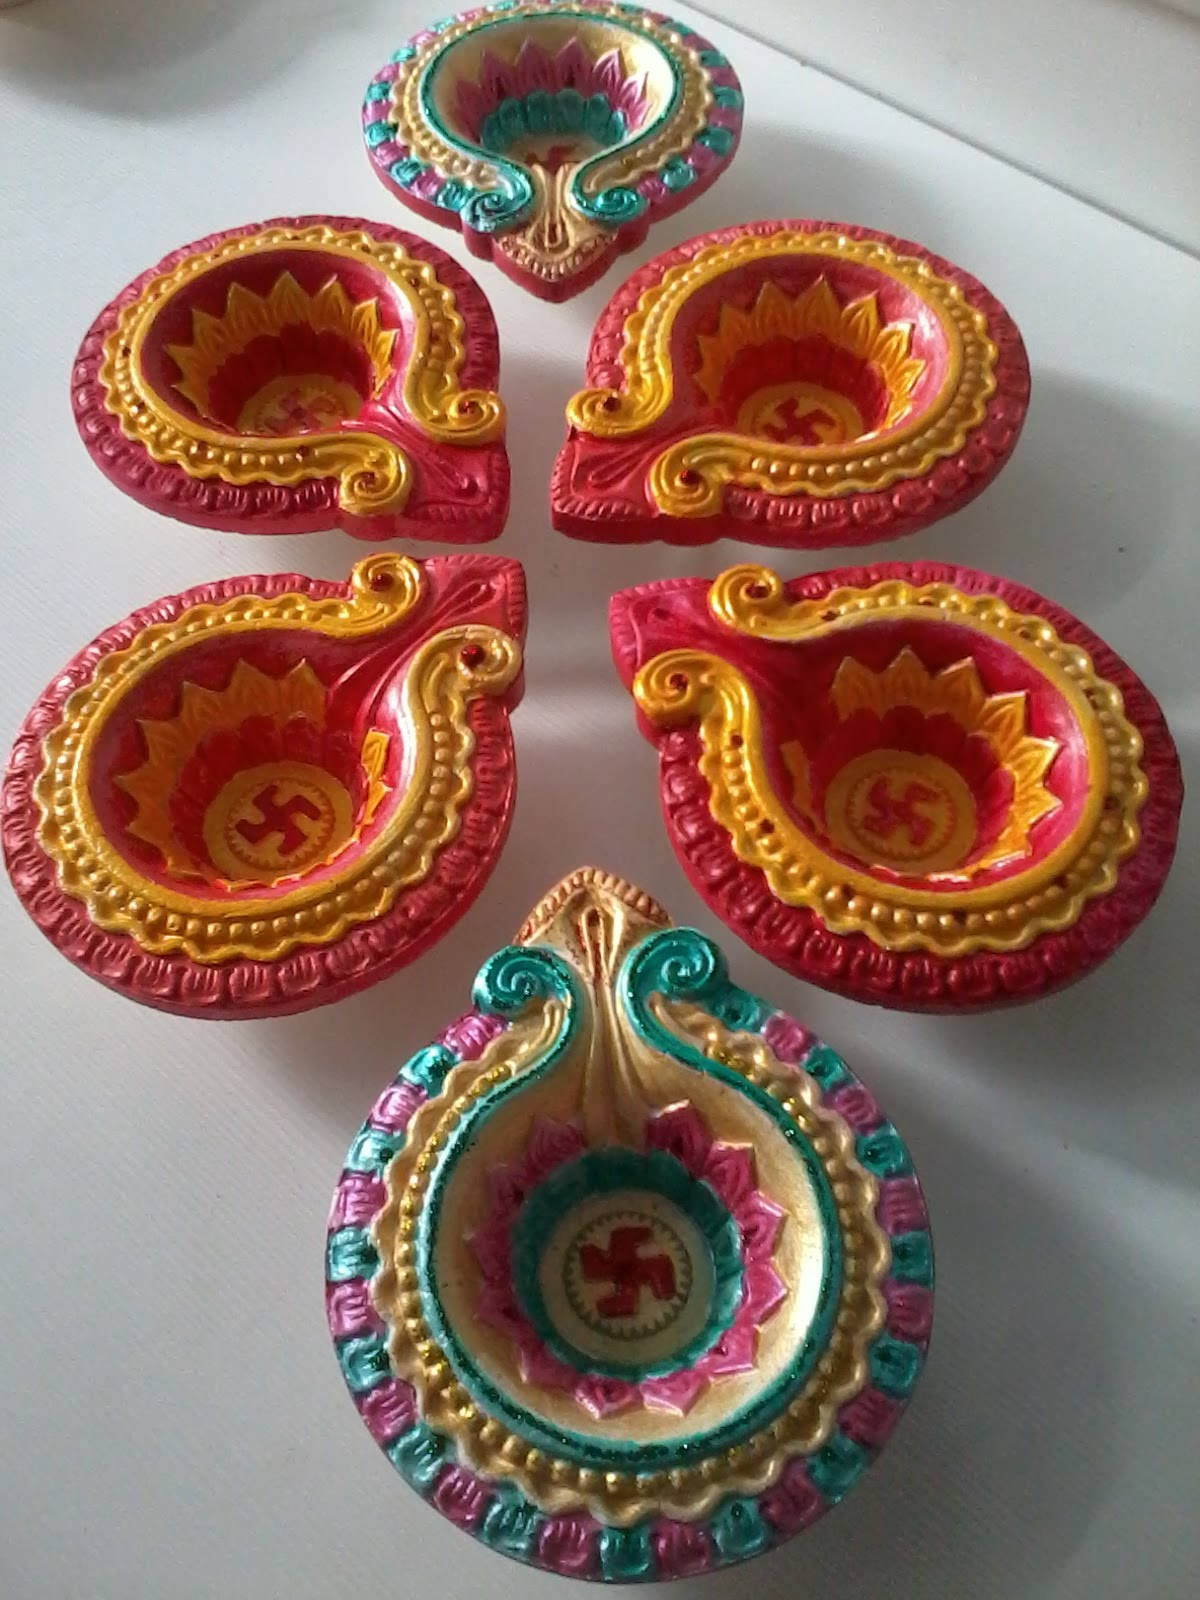 Decorative Items Art Corner Diwali Decorative Items